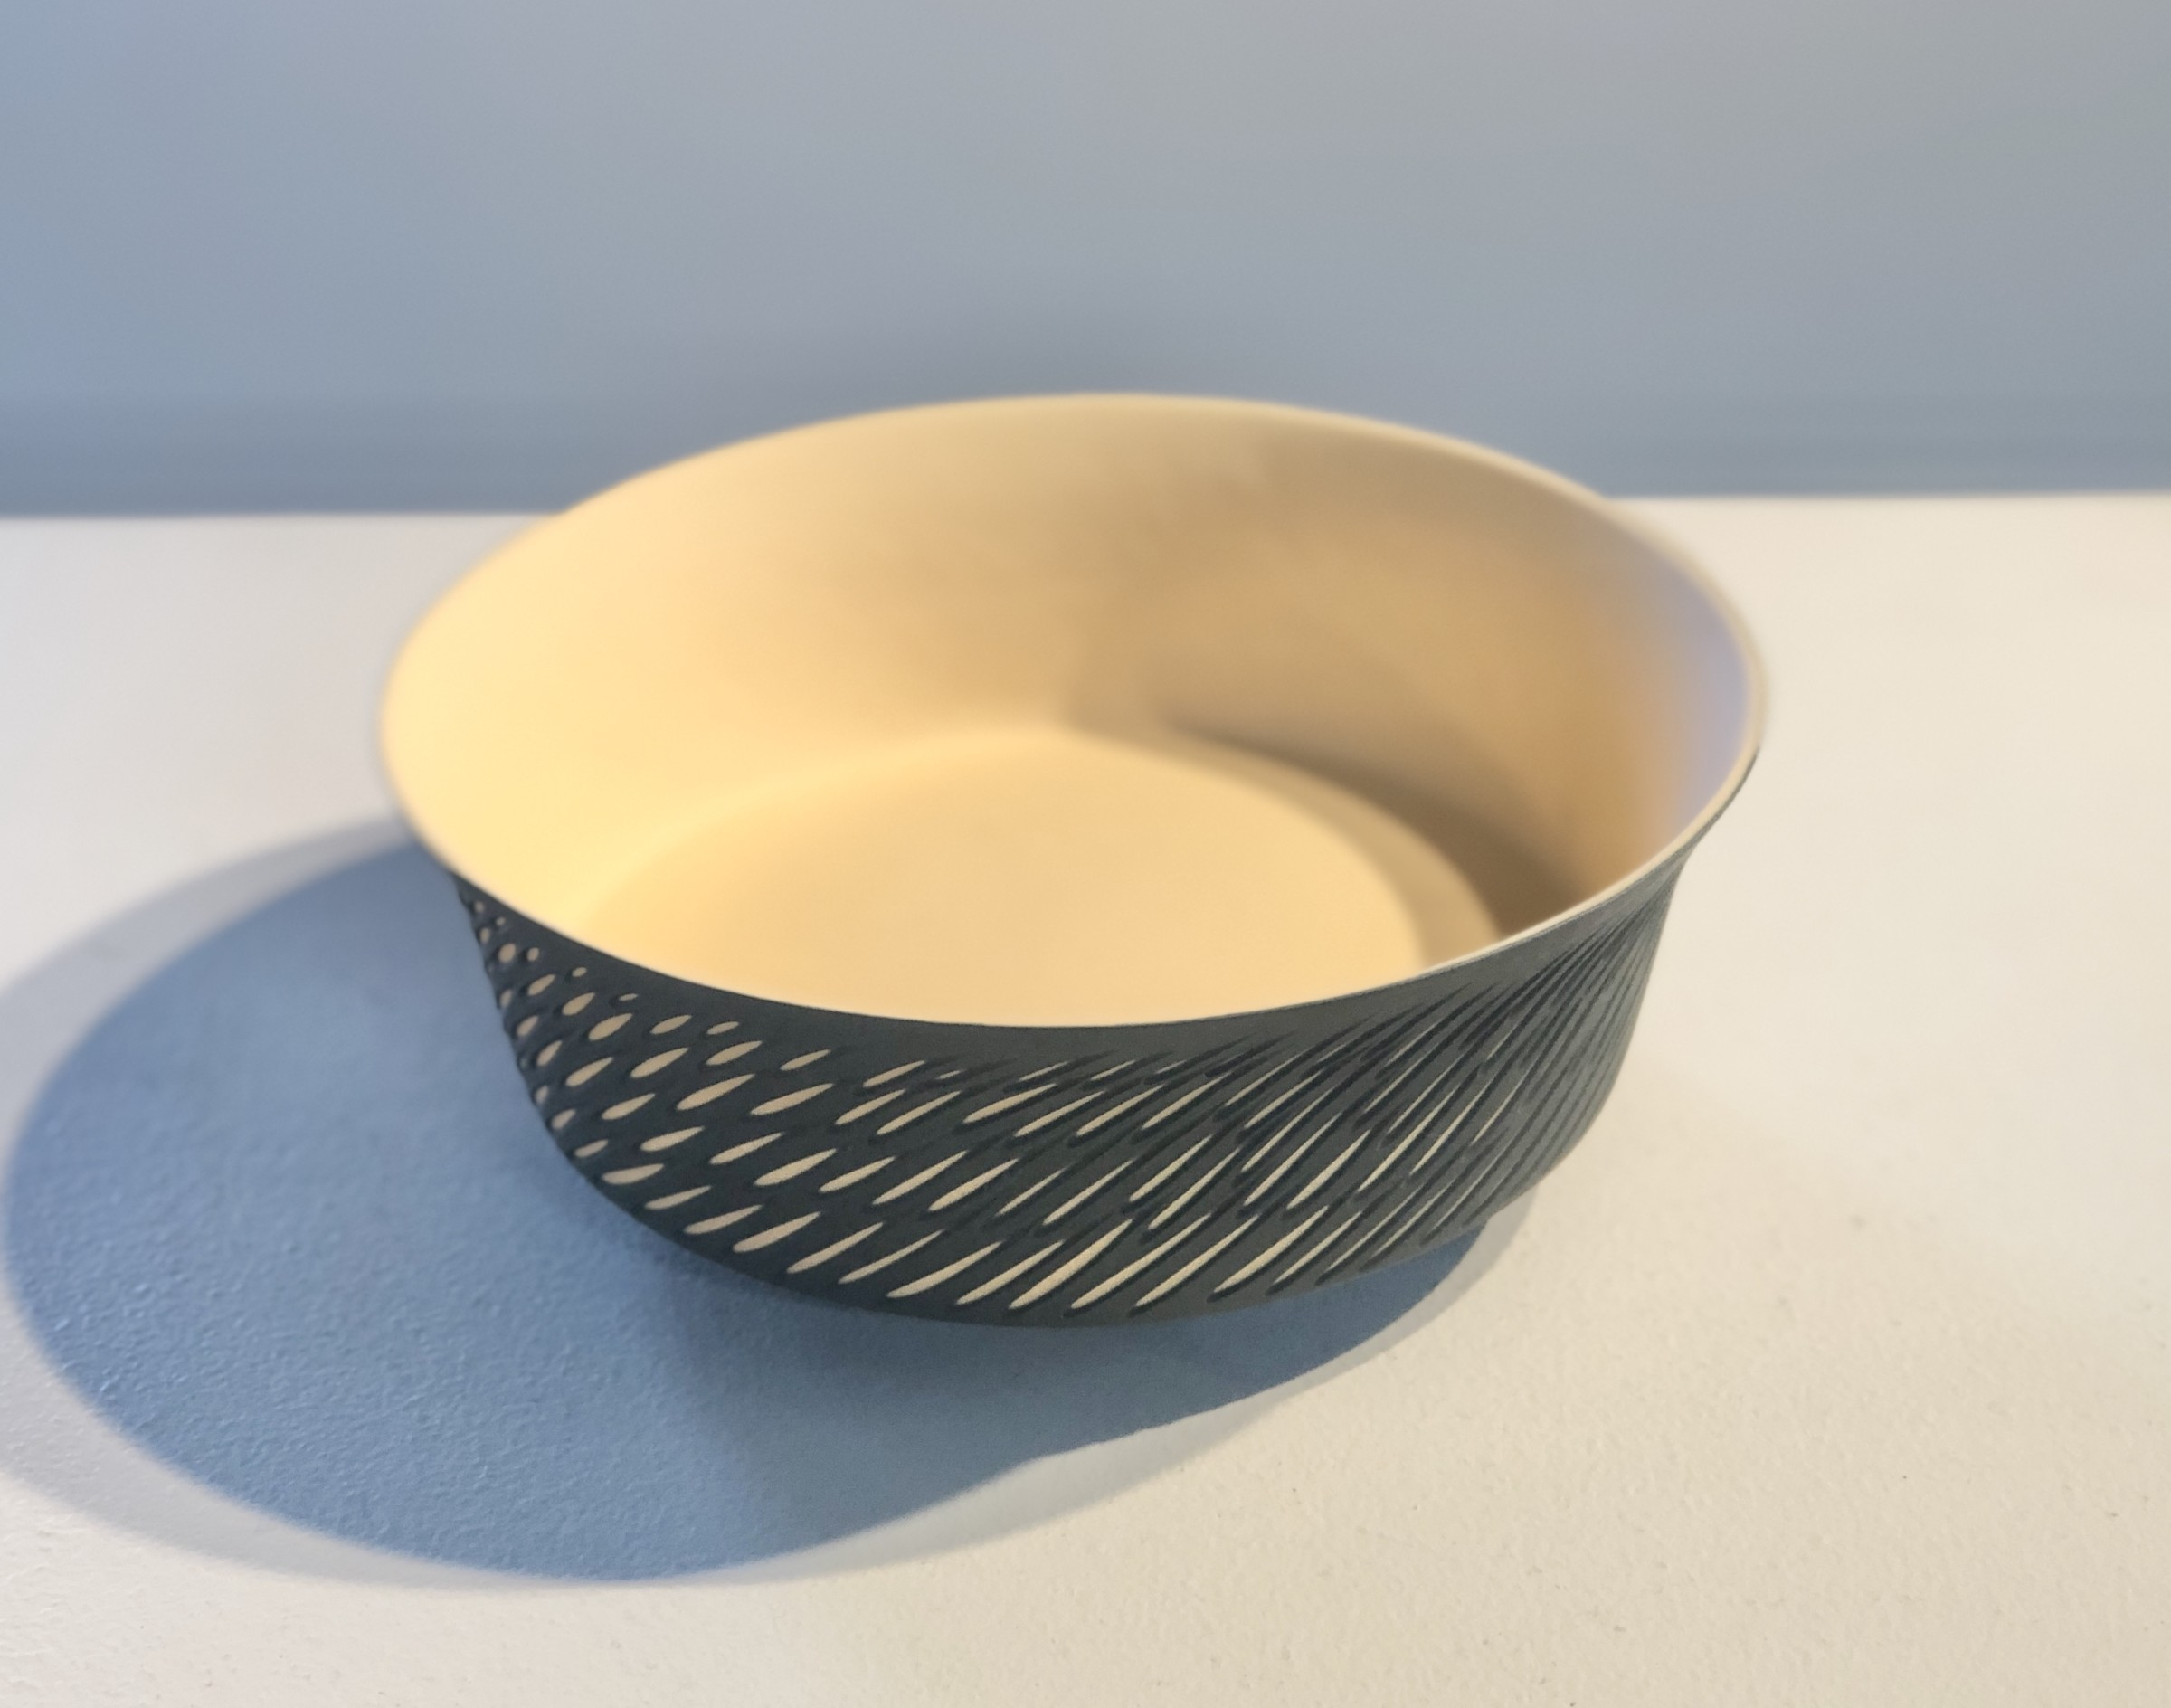 "<span class=""link fancybox-details-link""><a href=""/artists/60-sasha-wardell/works/7061-sasha-wardell-small-straight-sided-dish-shoal-2020/"">View Detail Page</a></span><div class=""artist""><strong>Sasha Wardell</strong></div> <div class=""title""><em>Small Straight Sided Dish Shoal</em>, 2020</div> <div class=""medium"">Layered Porcelain </div><div class=""price"">£210.00</div><div class=""copyright_line"">Ownart: £38 x 10 Months, 0% APR</div>"